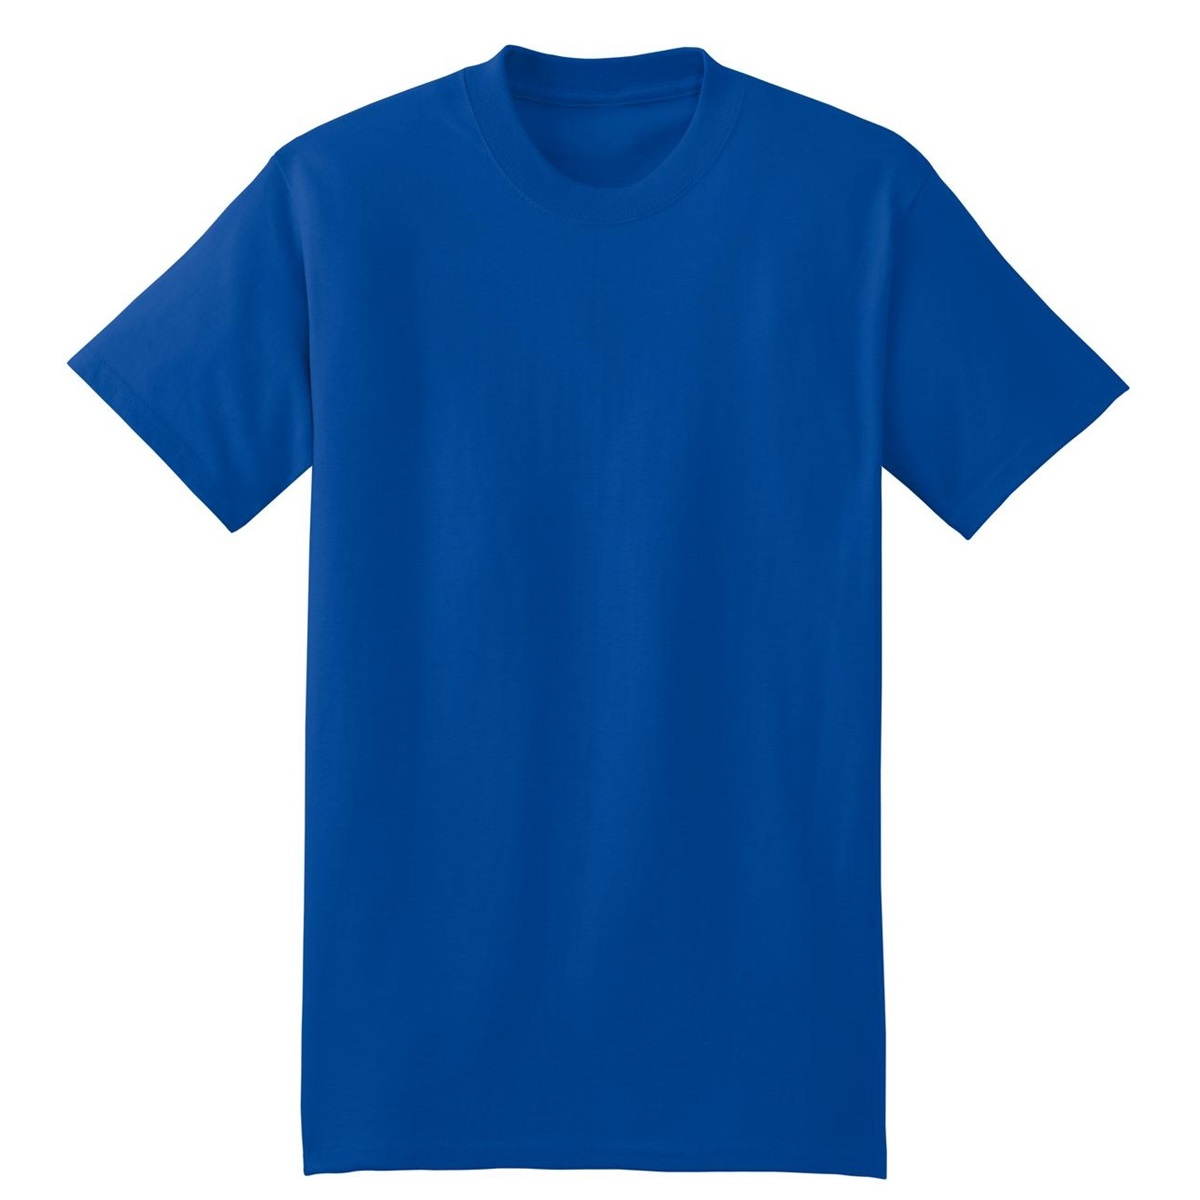 Hanes 5180 beefy t cotton t shirt deep royal for Hanes 5180 beefy t t shirt